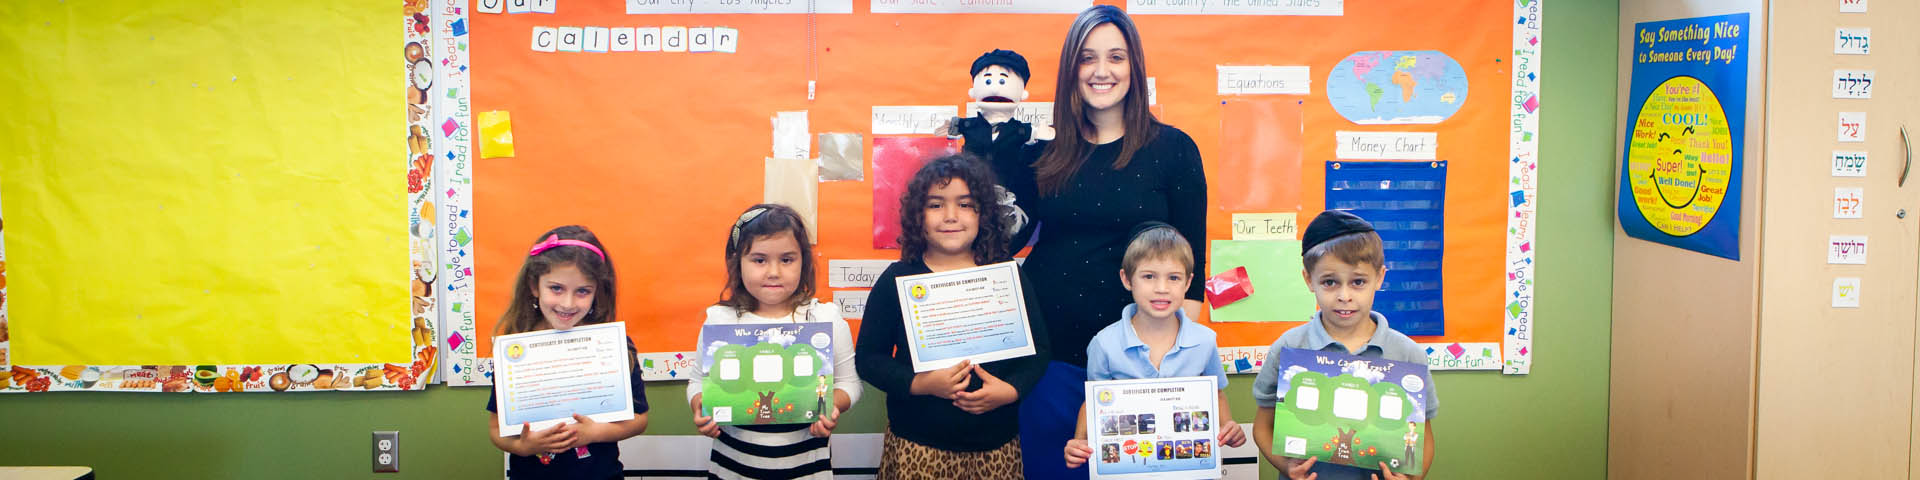 Safety Kid grads with teacher